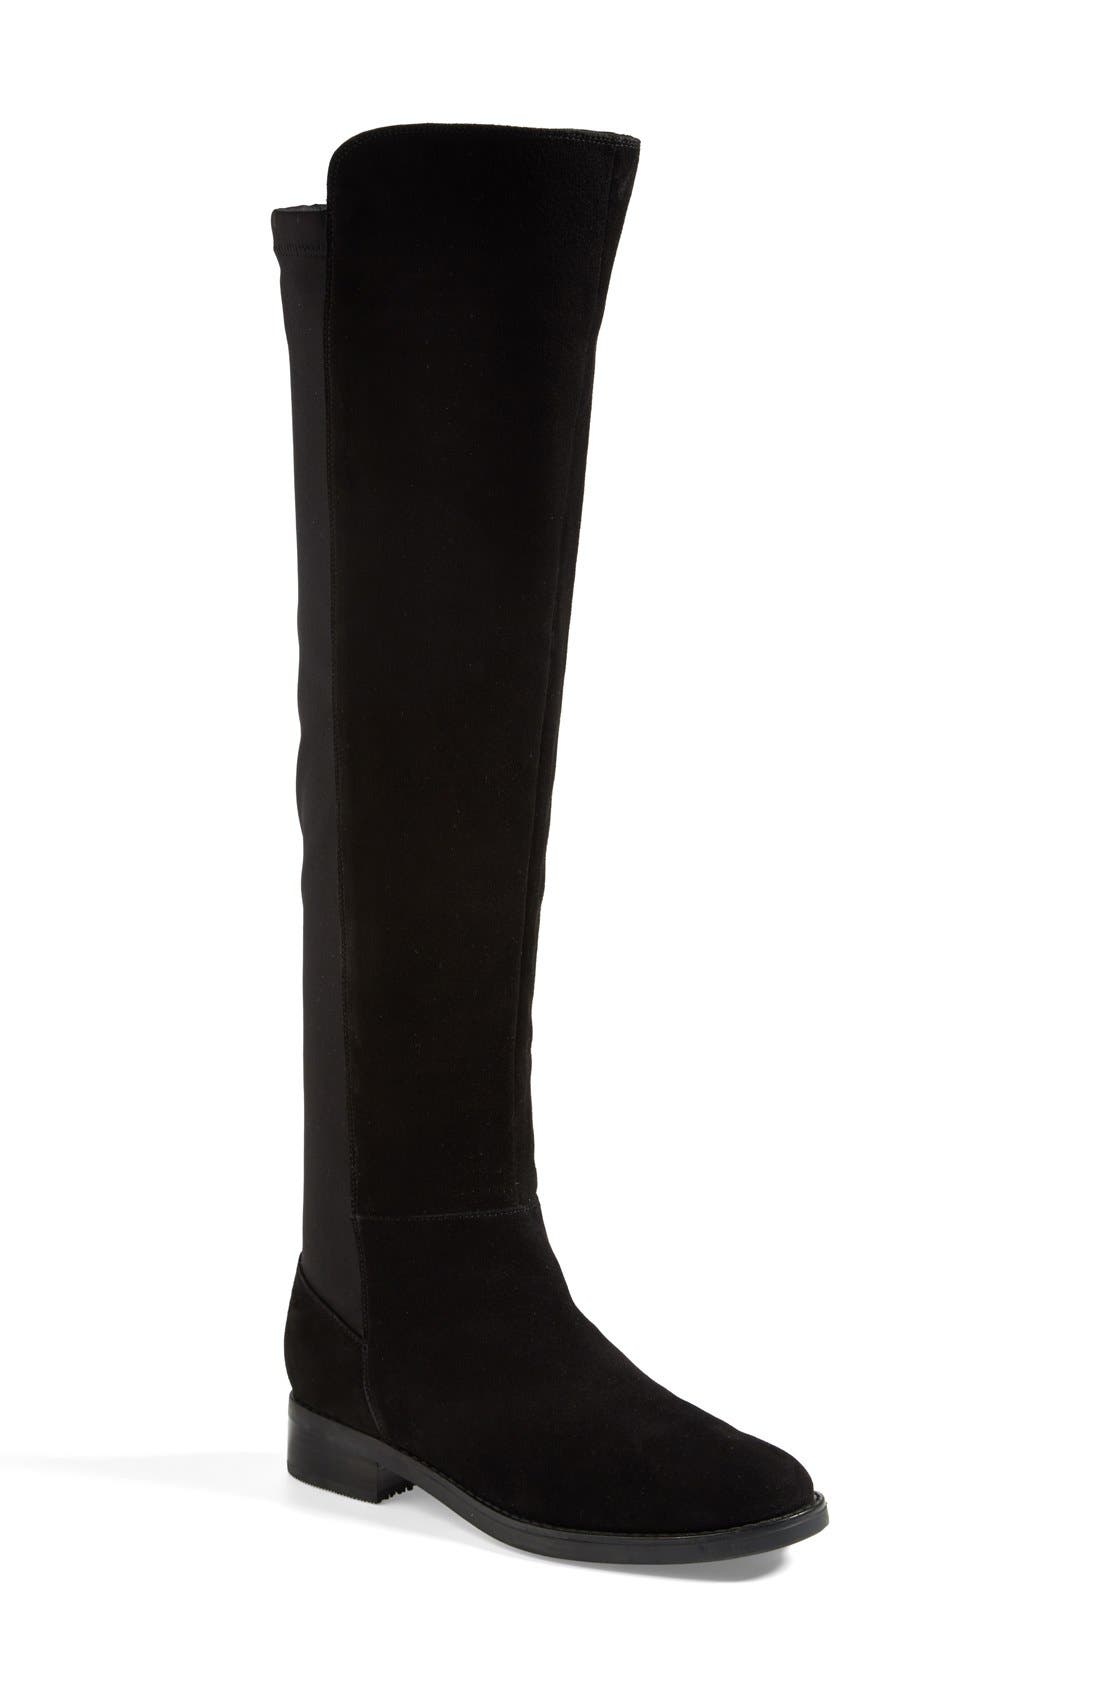 Alternate Image 1 Selected - Blondo 'Eden' Over the Knee Waterproof Boot (Women)